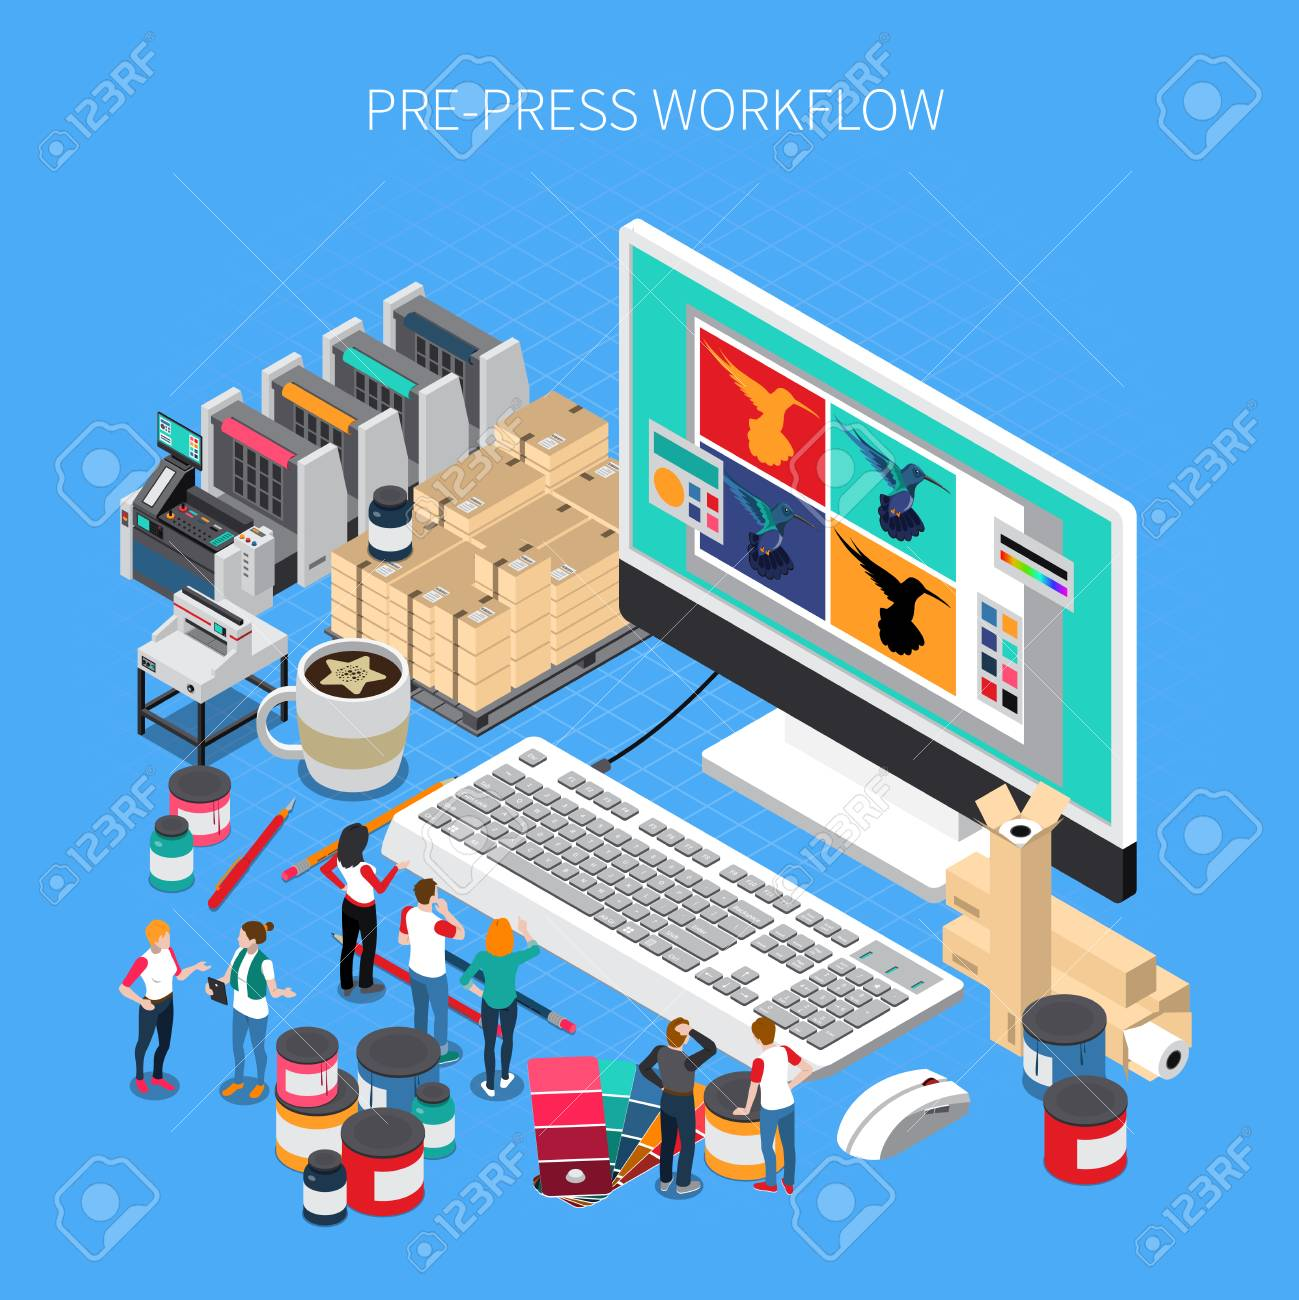 Printing house isometric composition with digital prepress workflow technology software design on desktop computer monitor vector illustration - 106993601